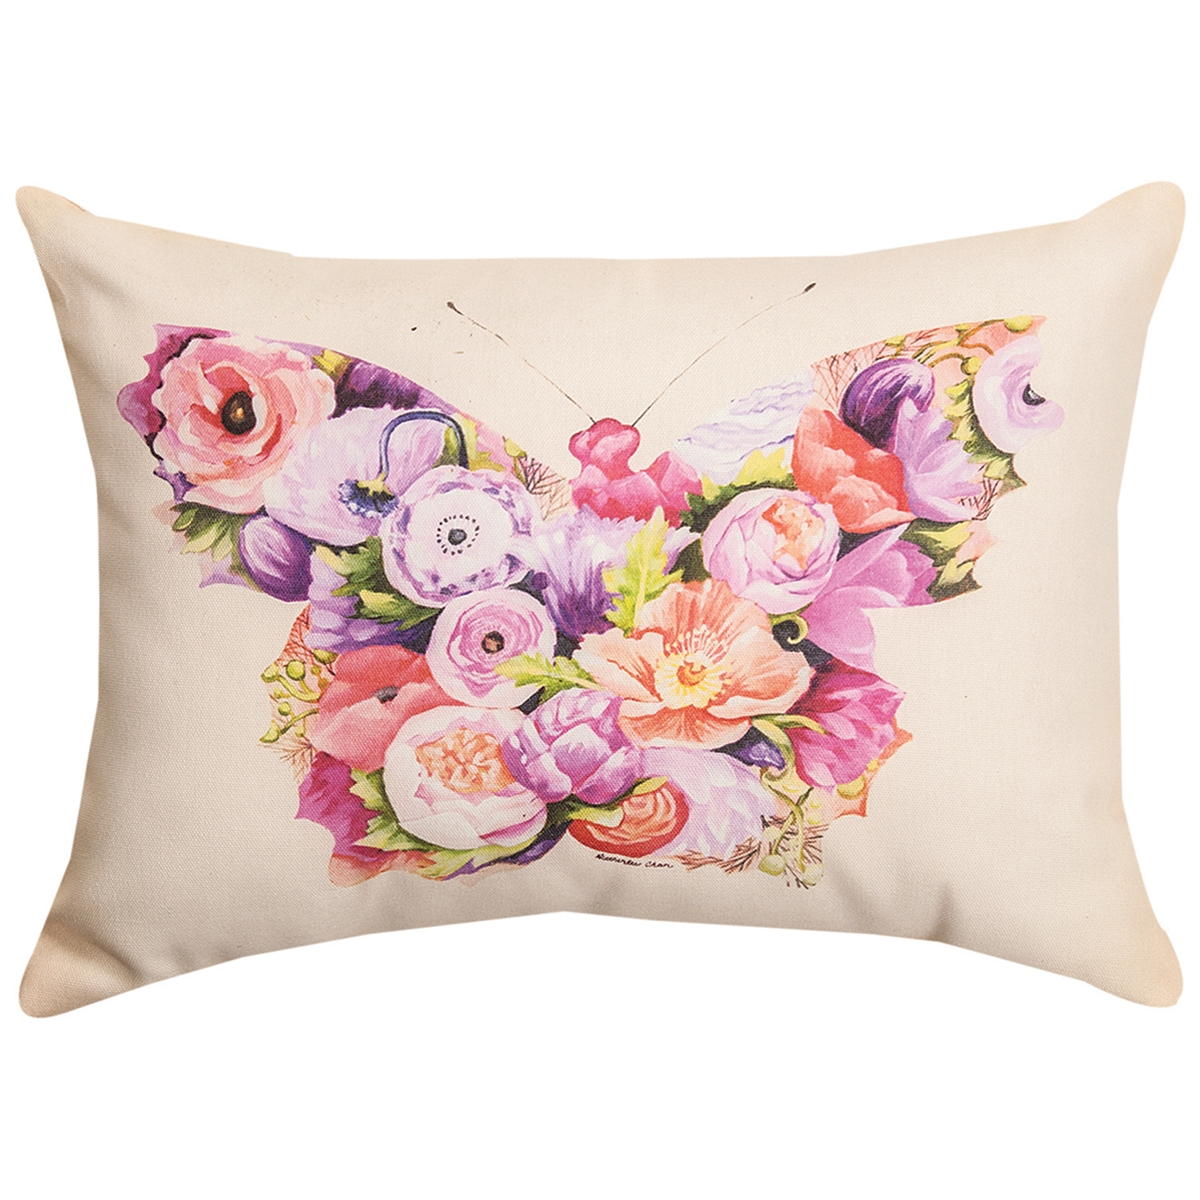 Floral Butterfly Pillow